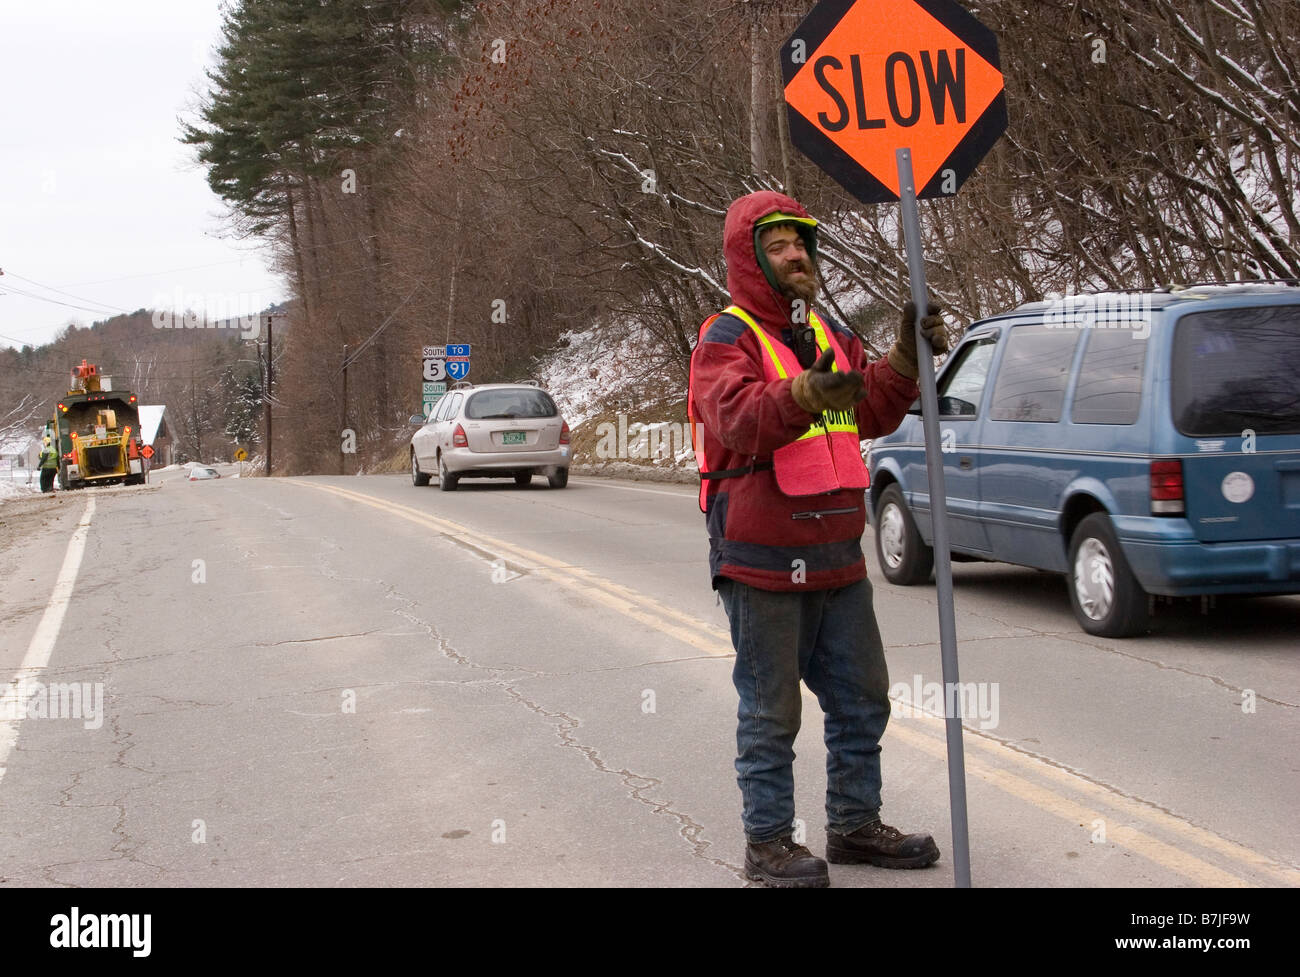 Flagger road worker holds traffic sign in middle of road - Stock Image